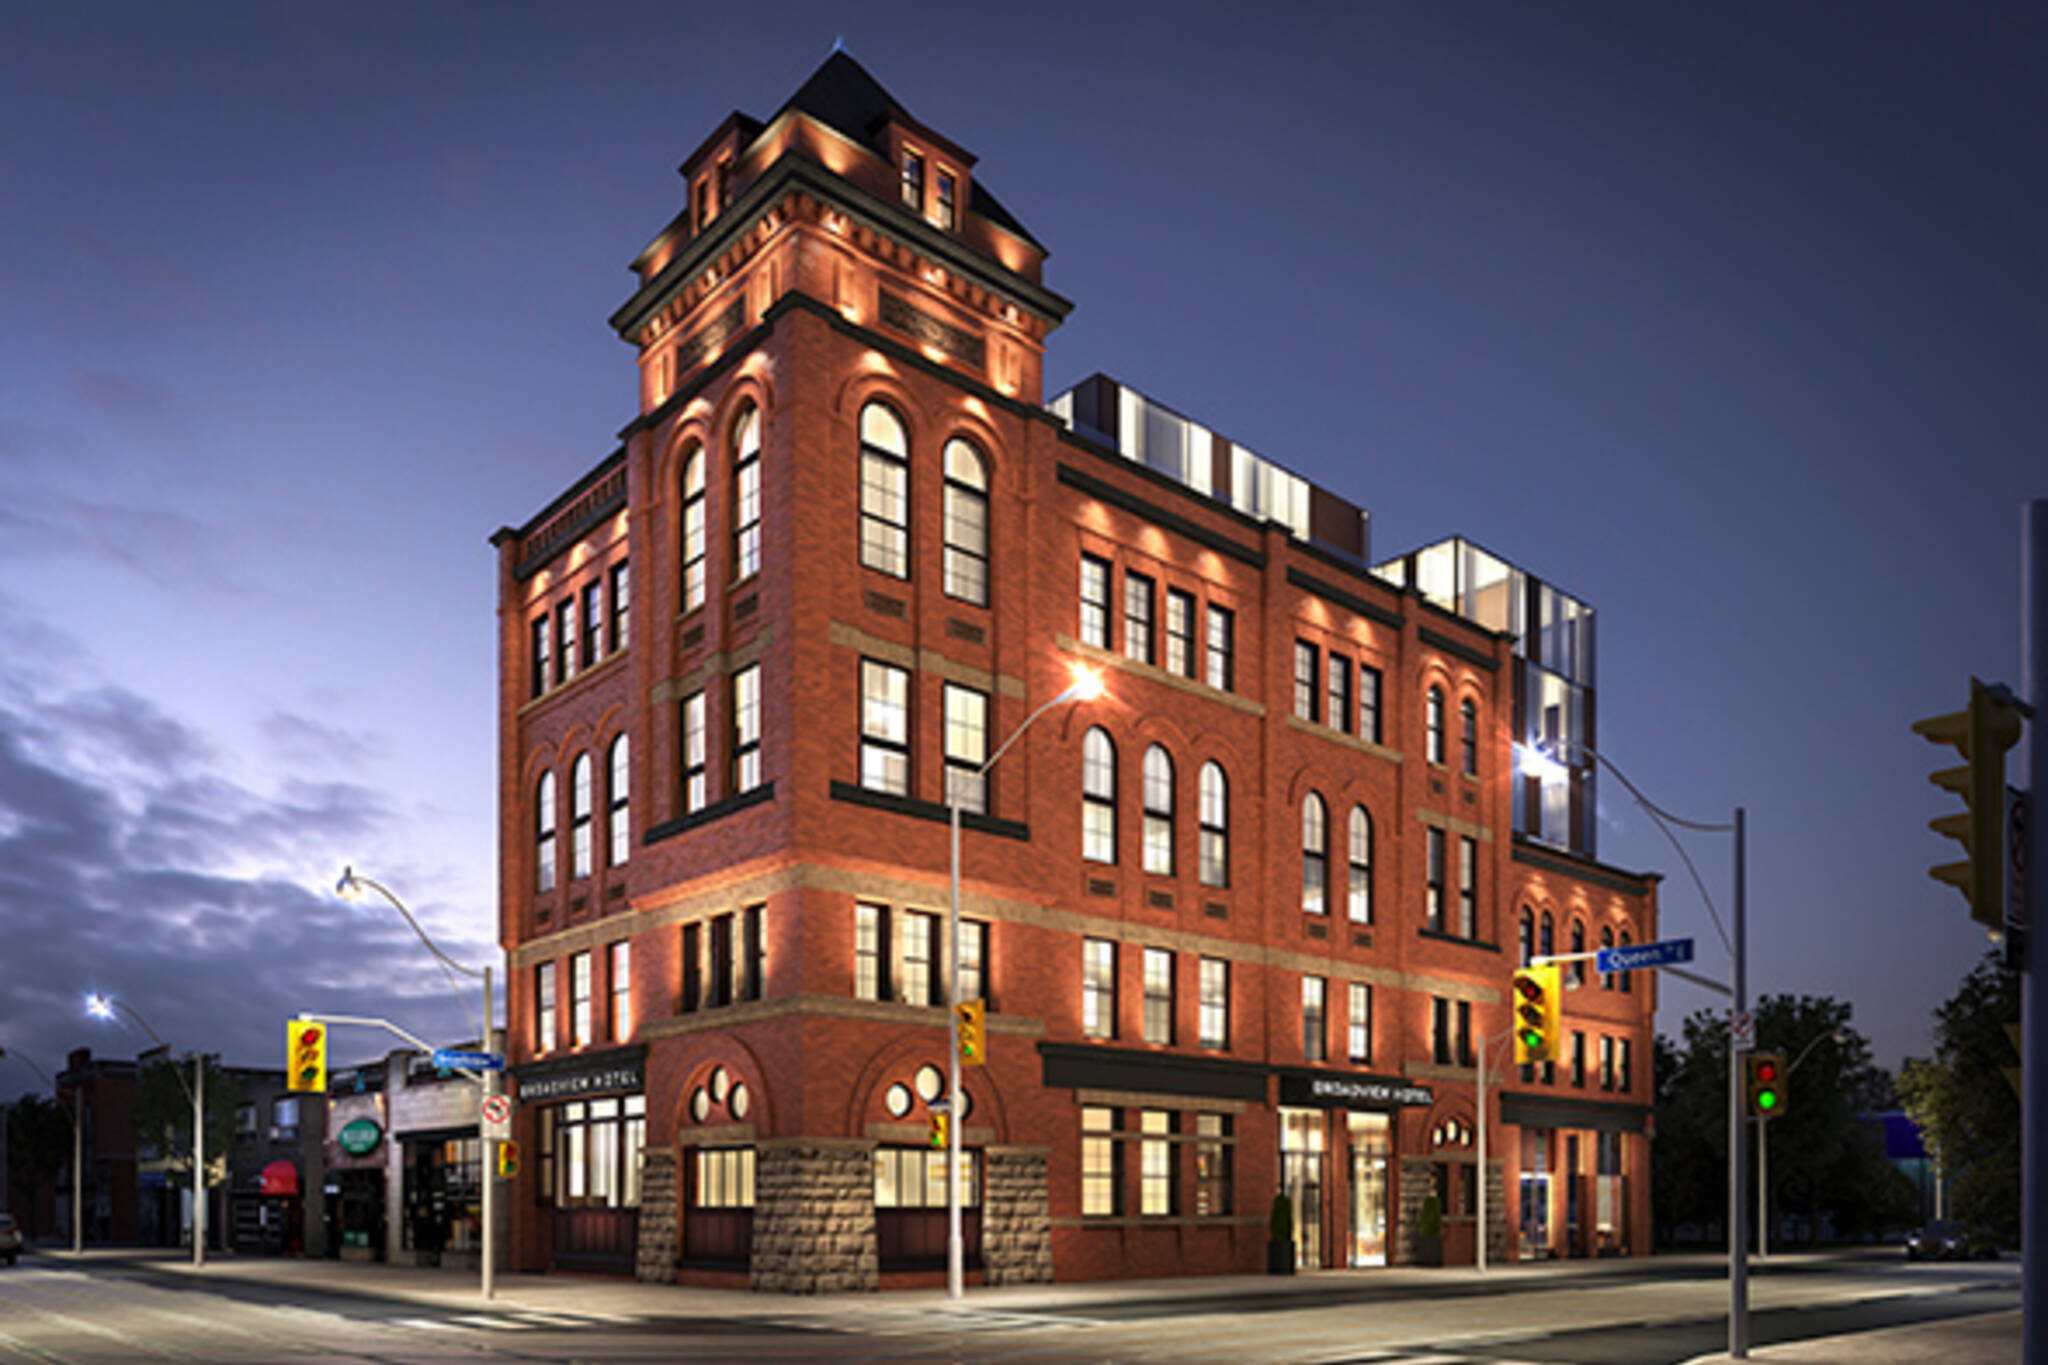 The New Broadview Hotel